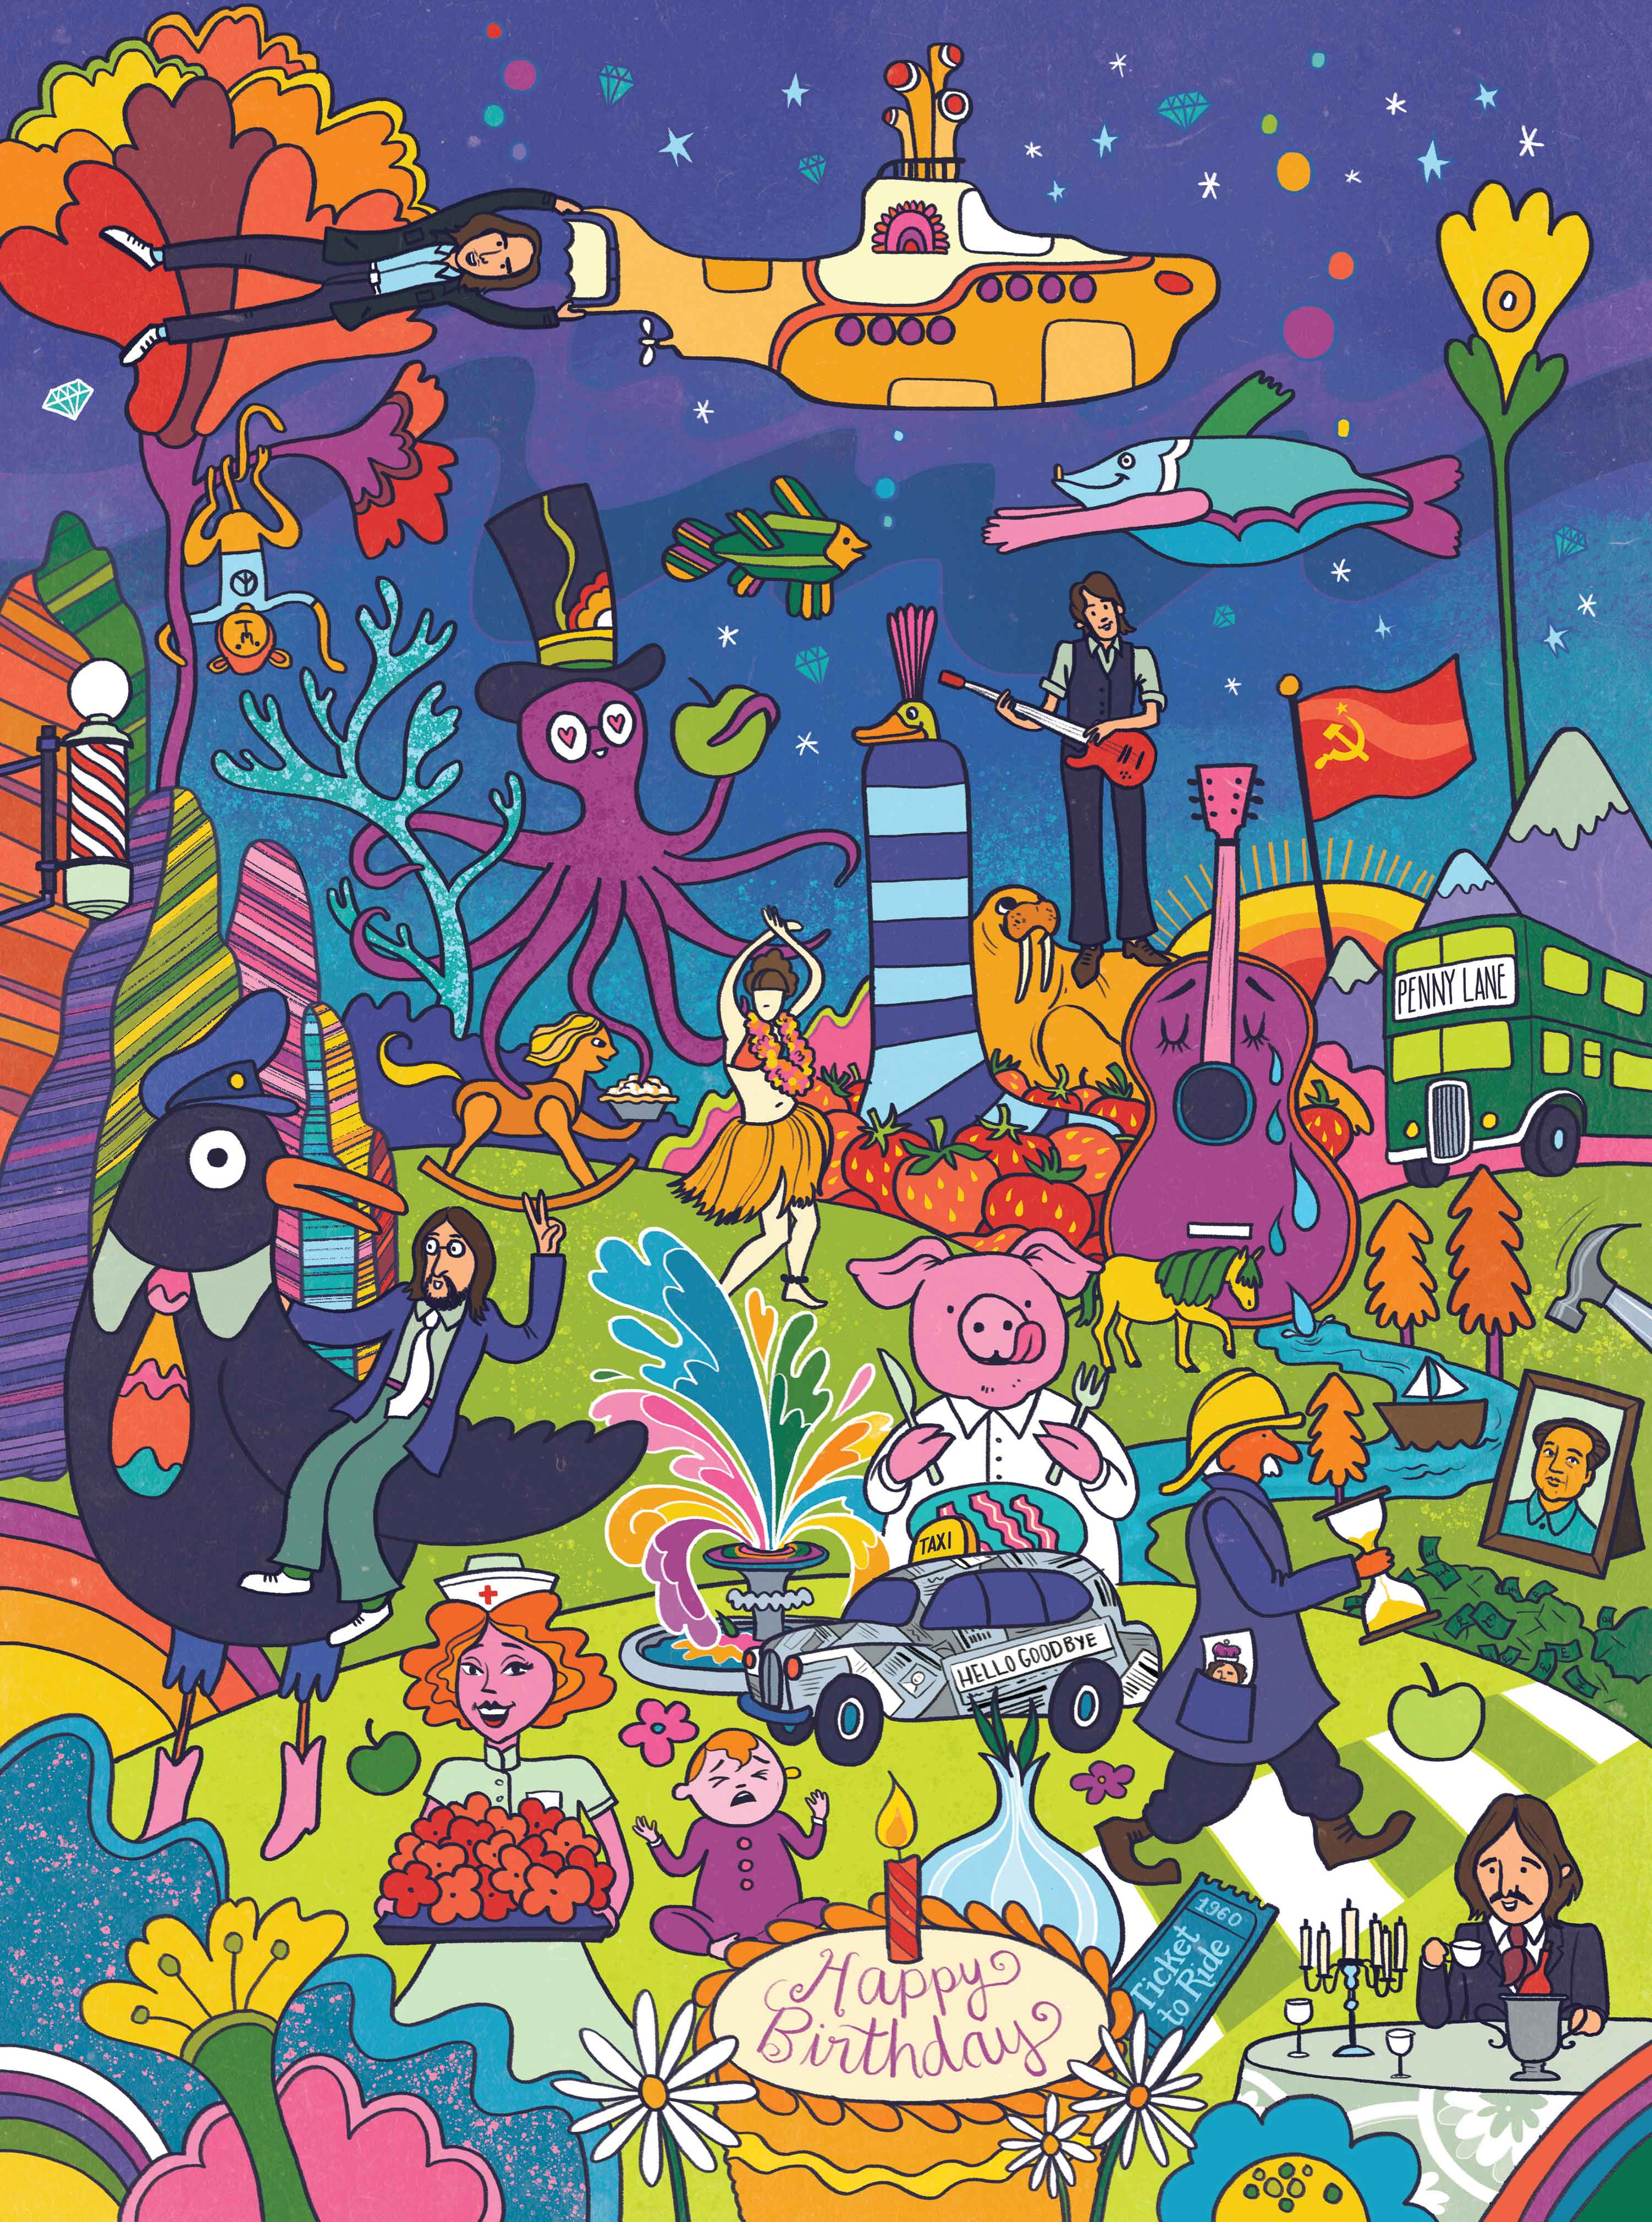 A psychodelic drawing of many of the beatles iconic characters from their songs.